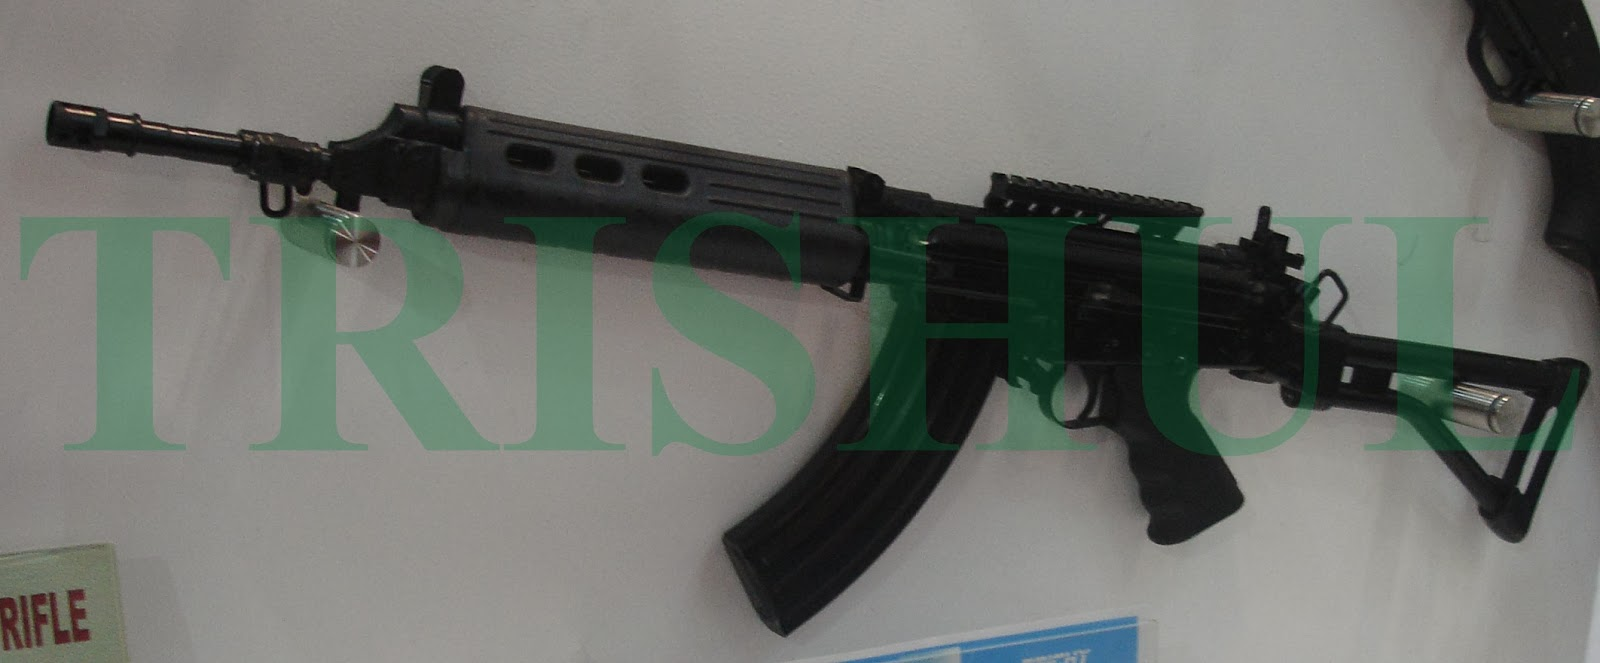 Drdo multical rifle unveiled page 7 - Some More Homegrown Product Exhibits